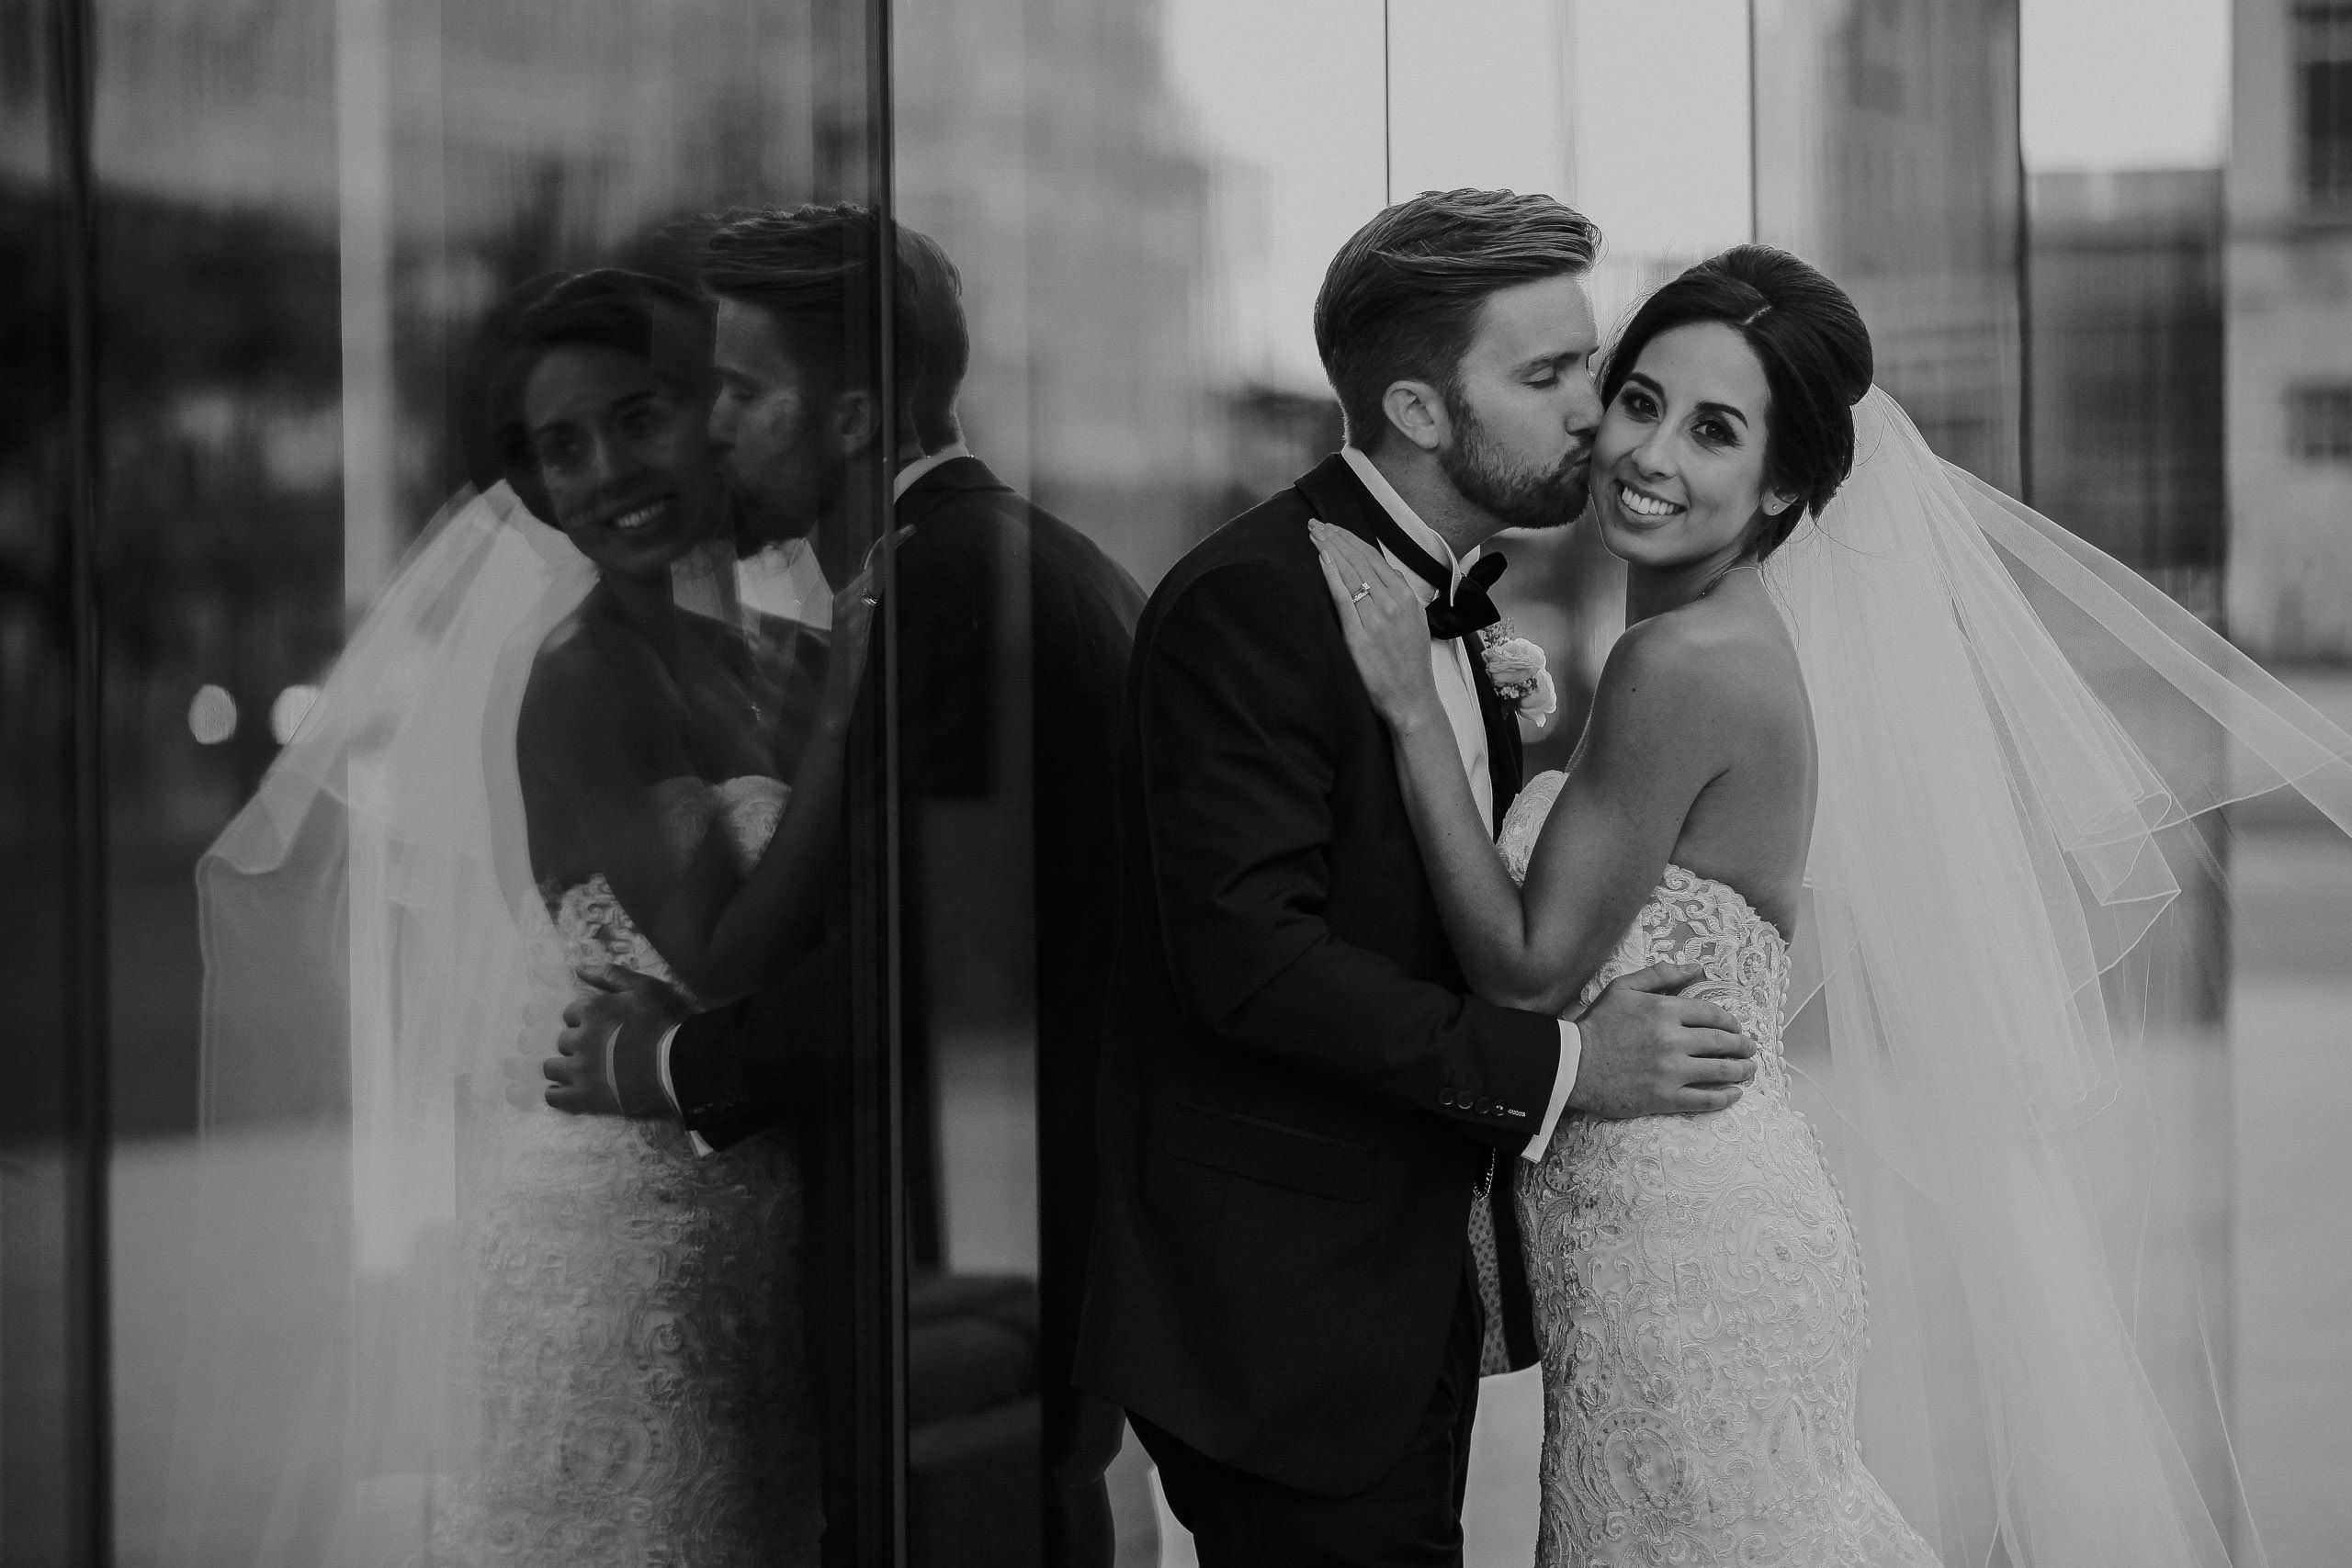 Wedding photographer Liverpool showreel. Black and white photo bride and groom Liverpool waterfront 30 James St